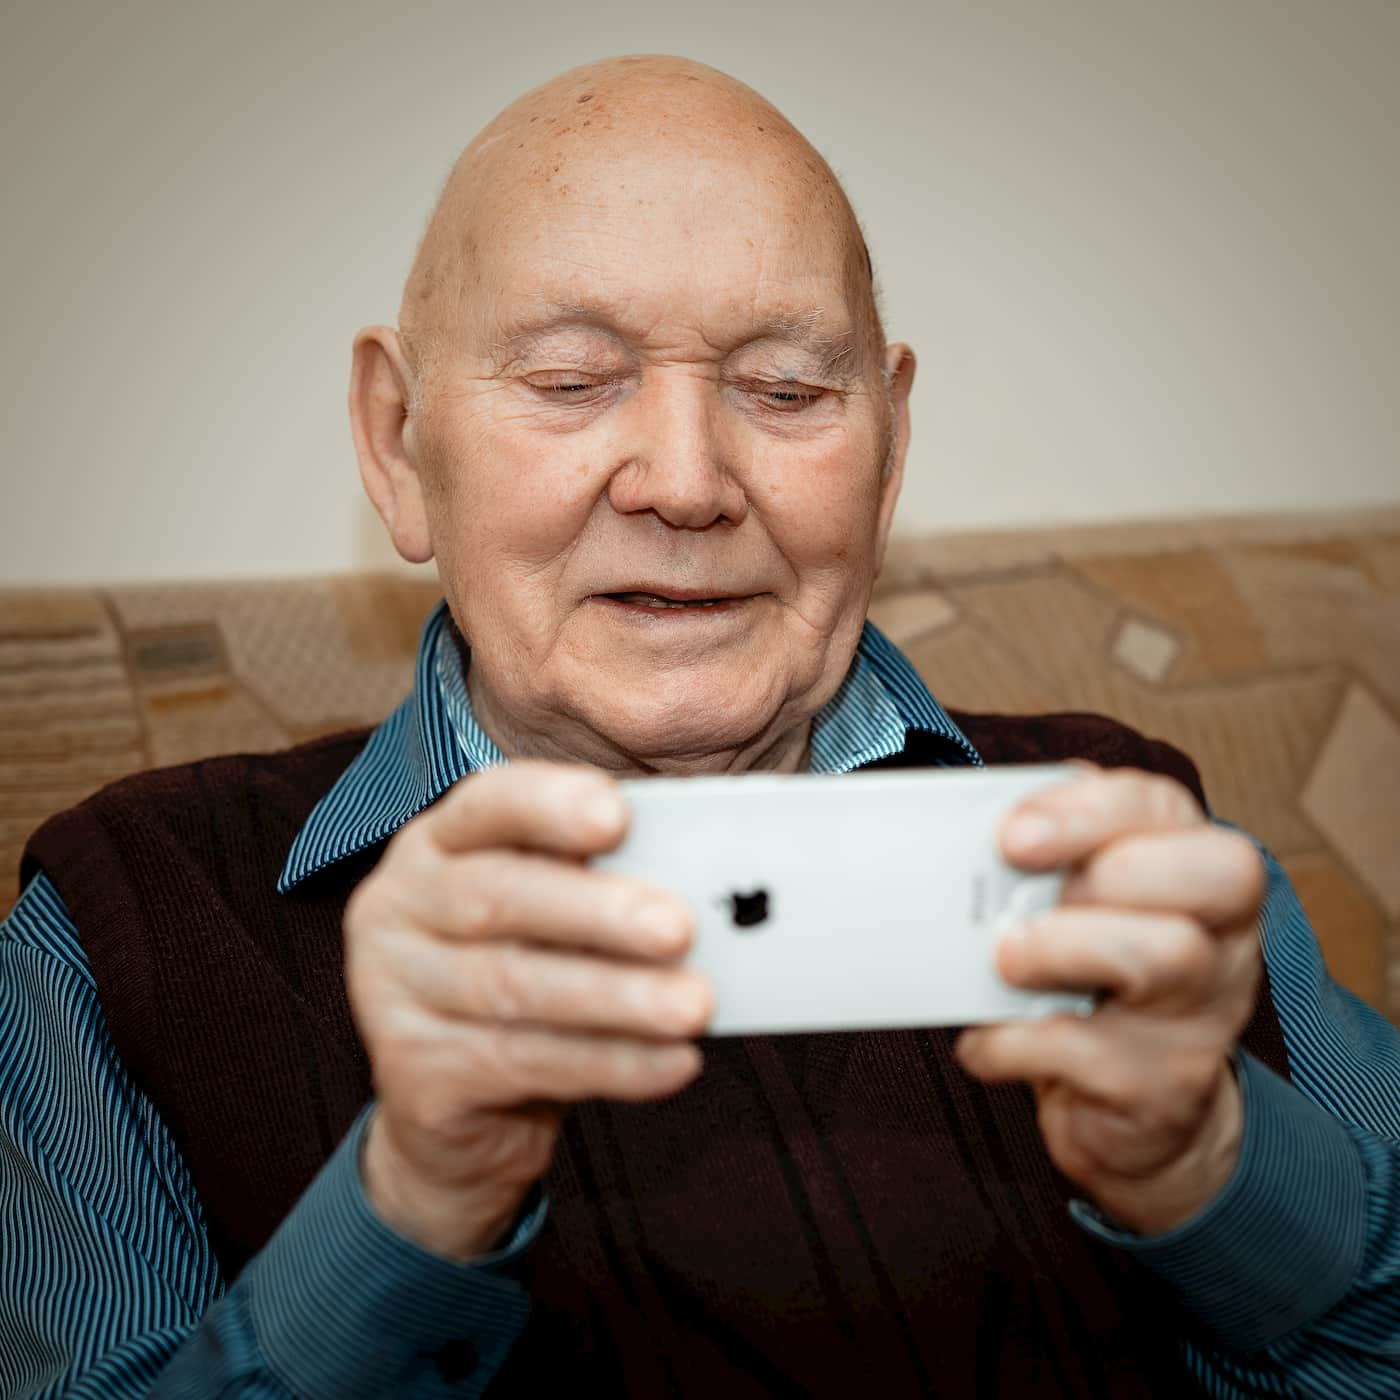 older parents using technology